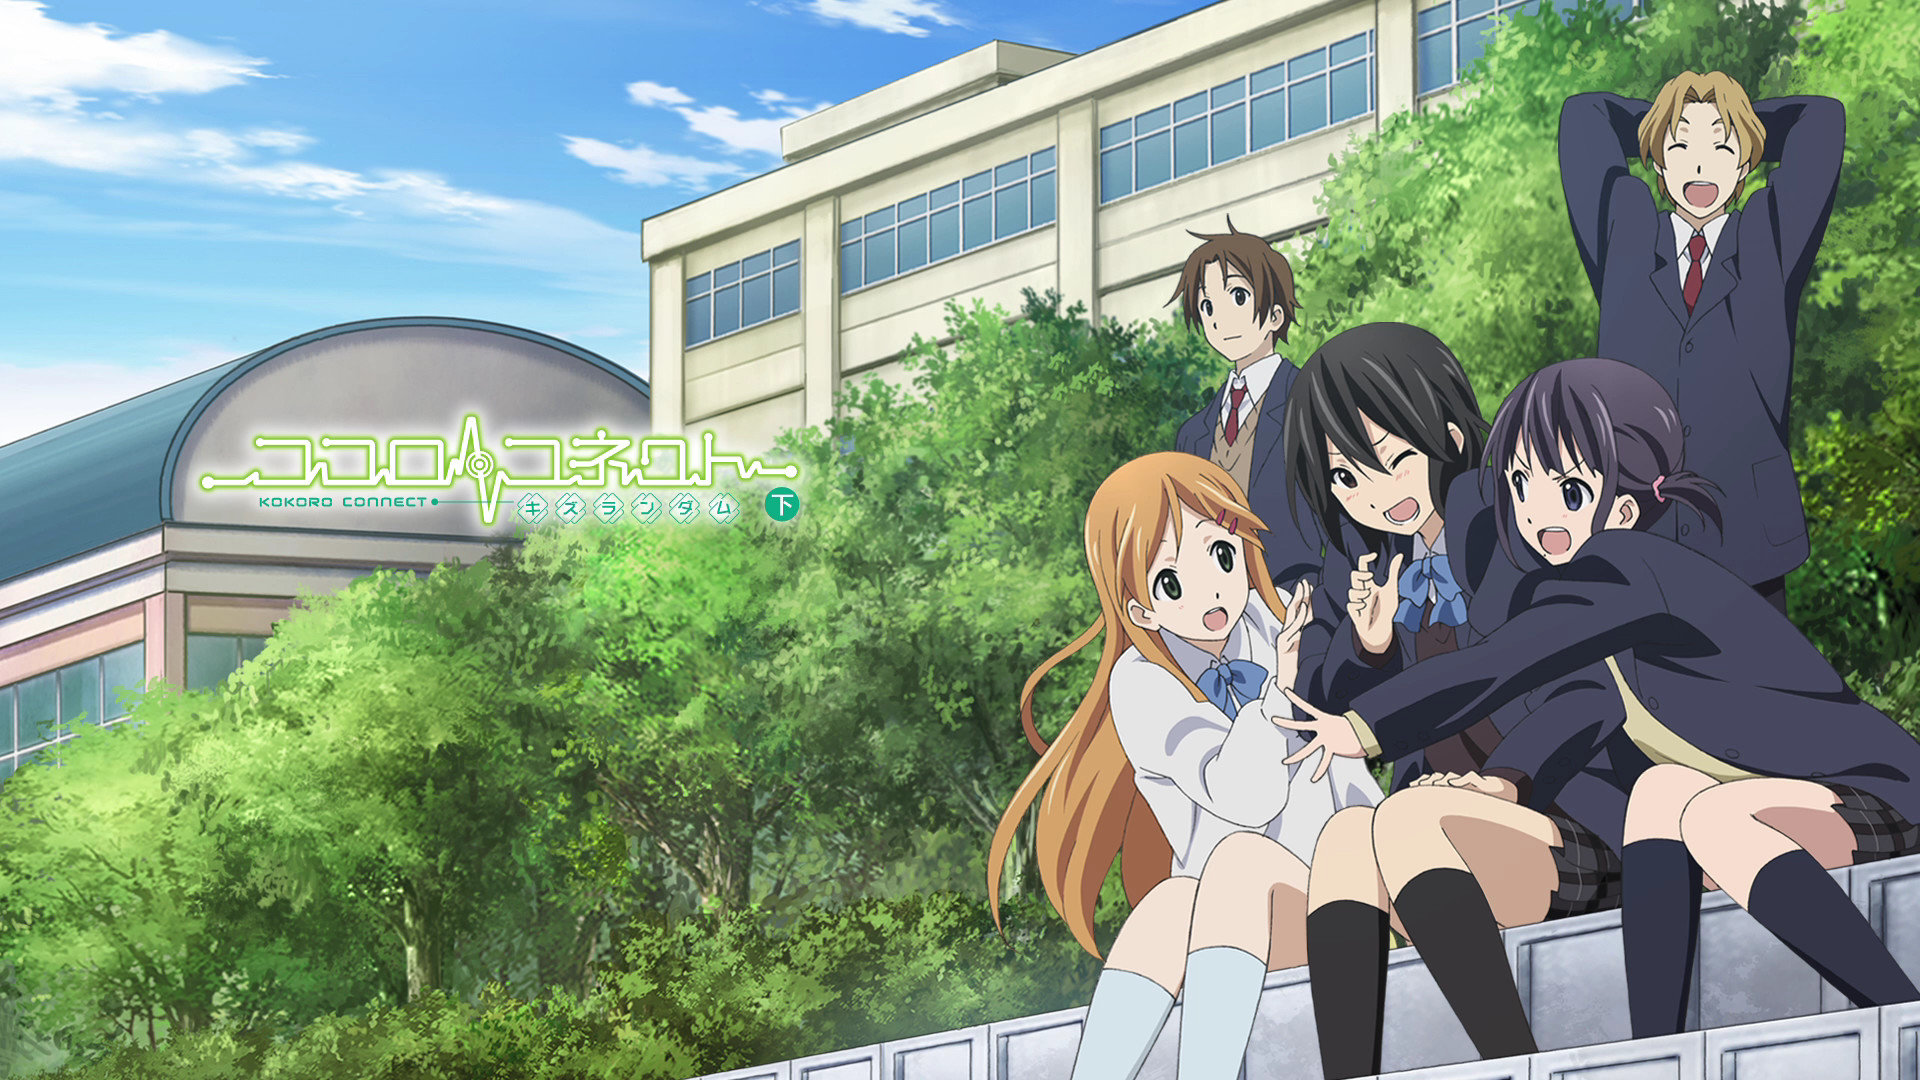 Download full hd 1920x1080 Kokoro Connect PC background ID:180212 for free